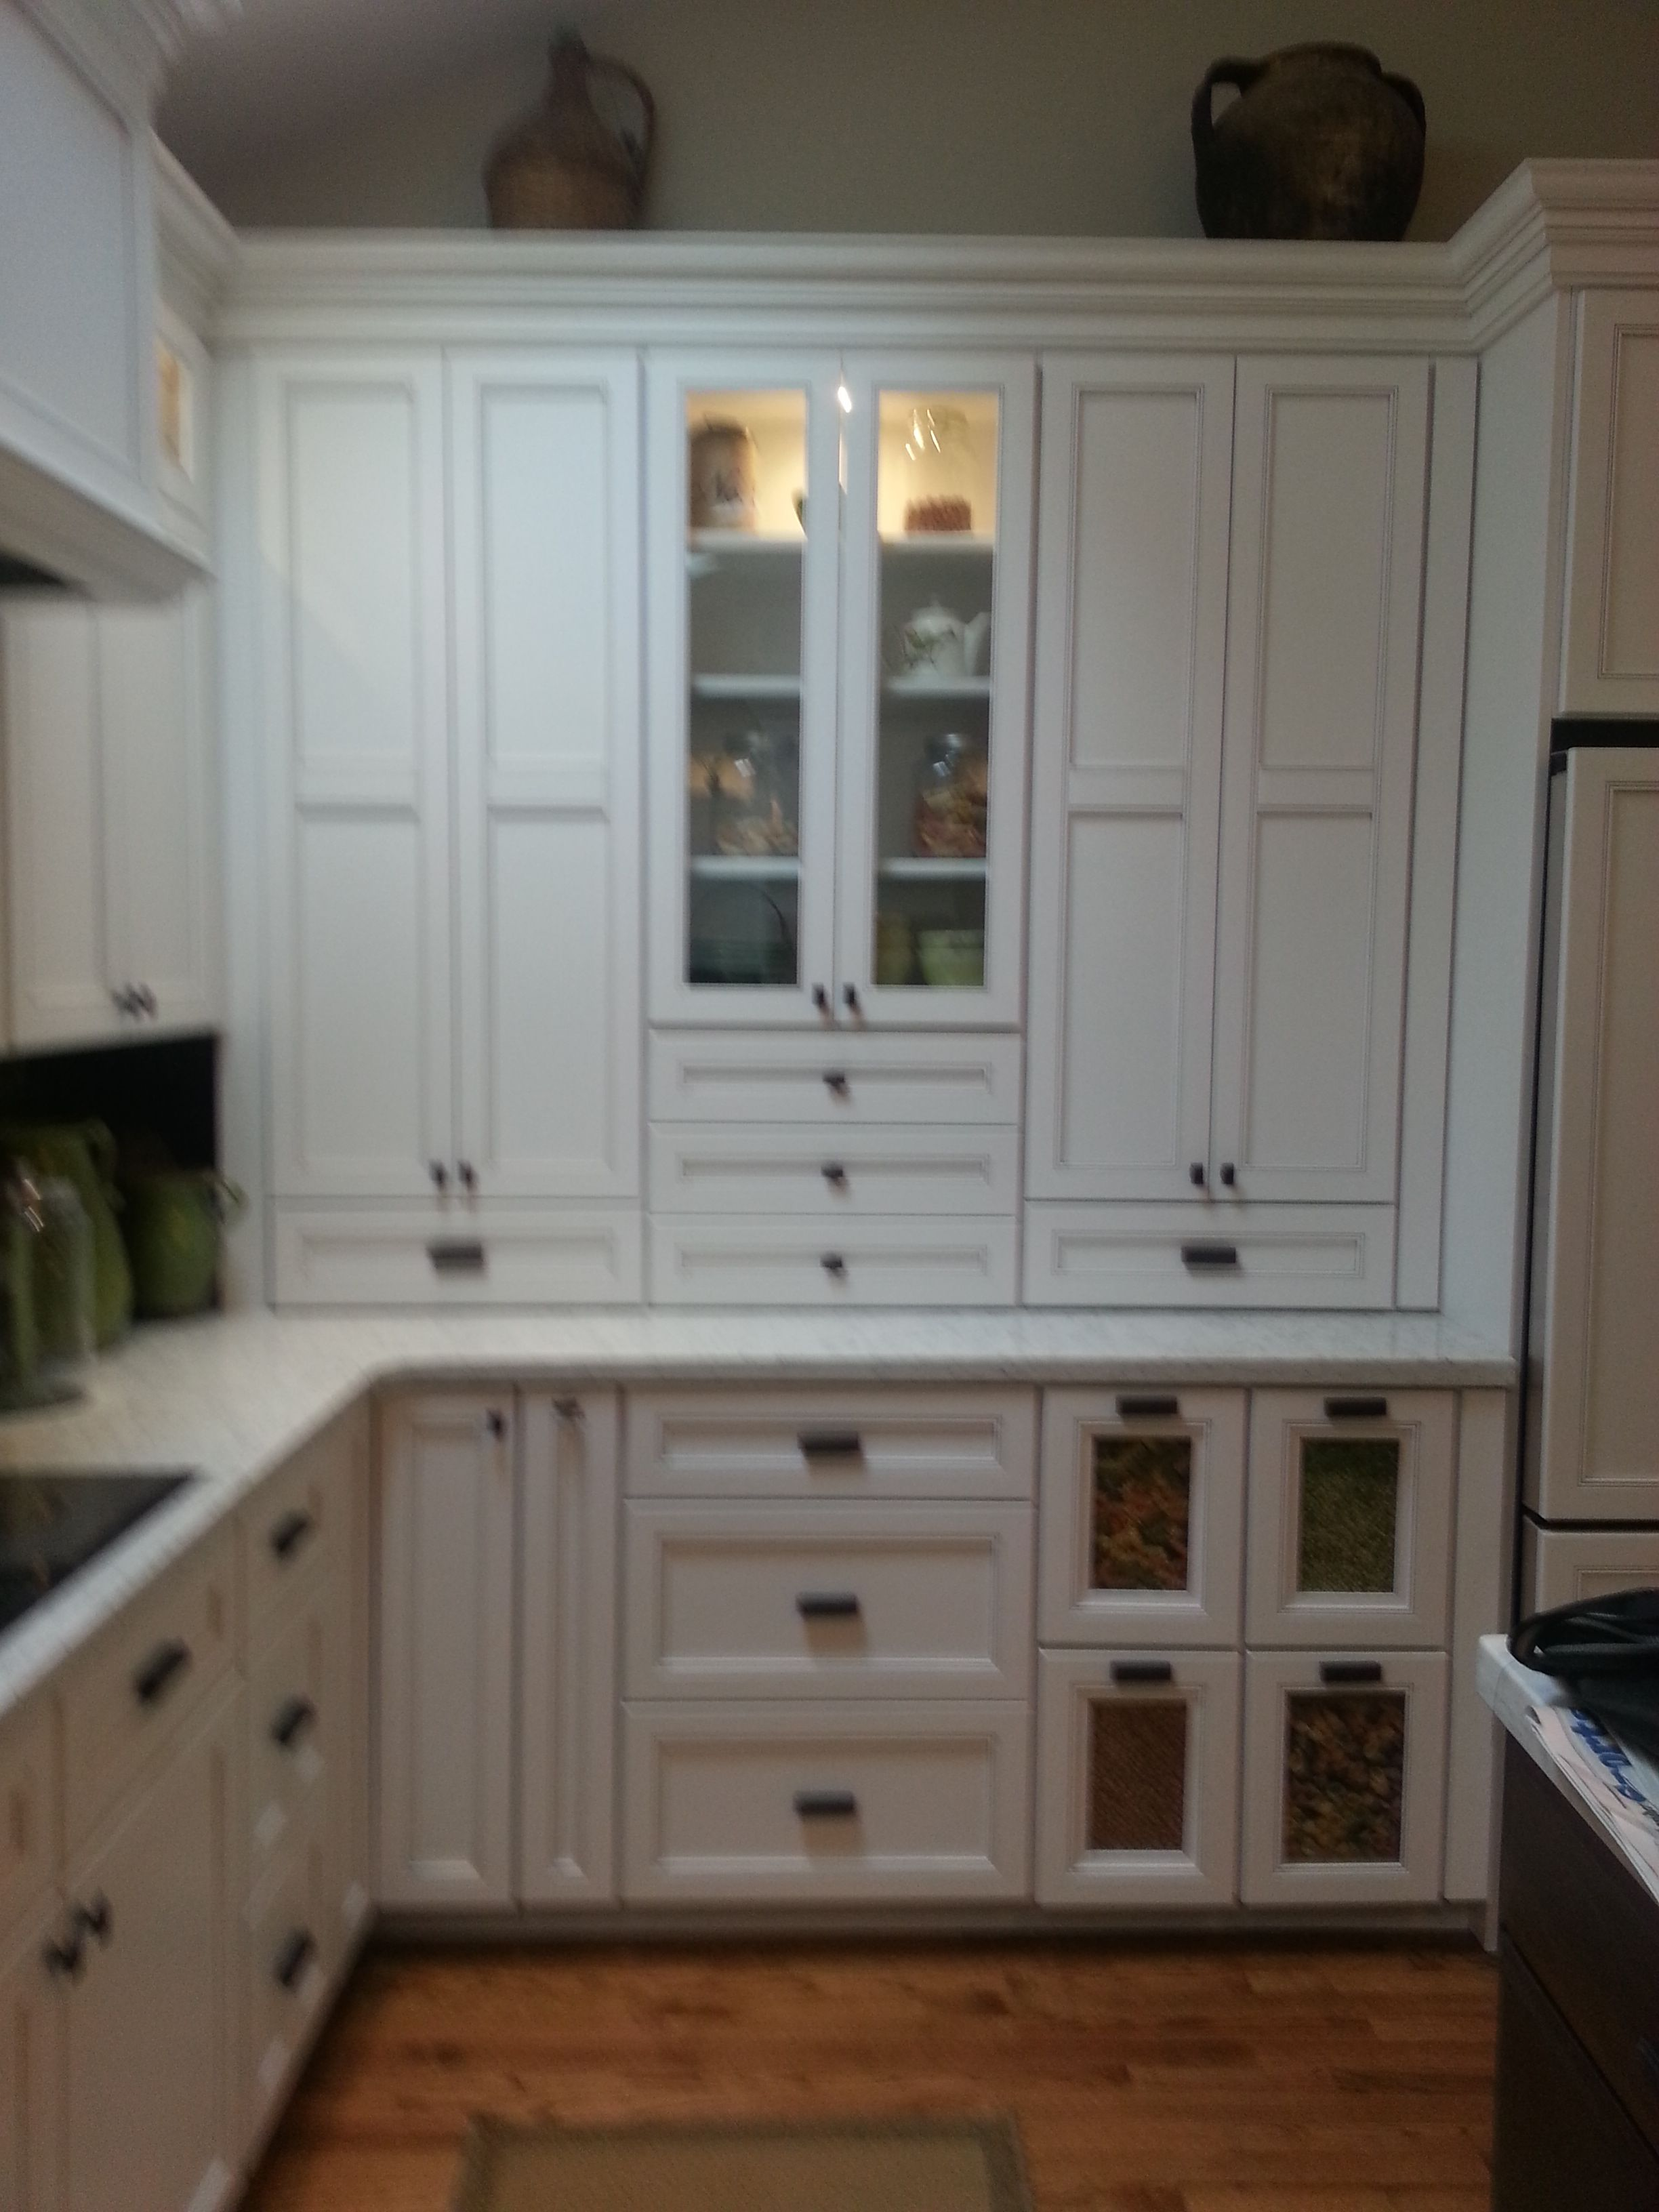 Omega Cabinetry white kitchen Pantry cabinet ve able bin